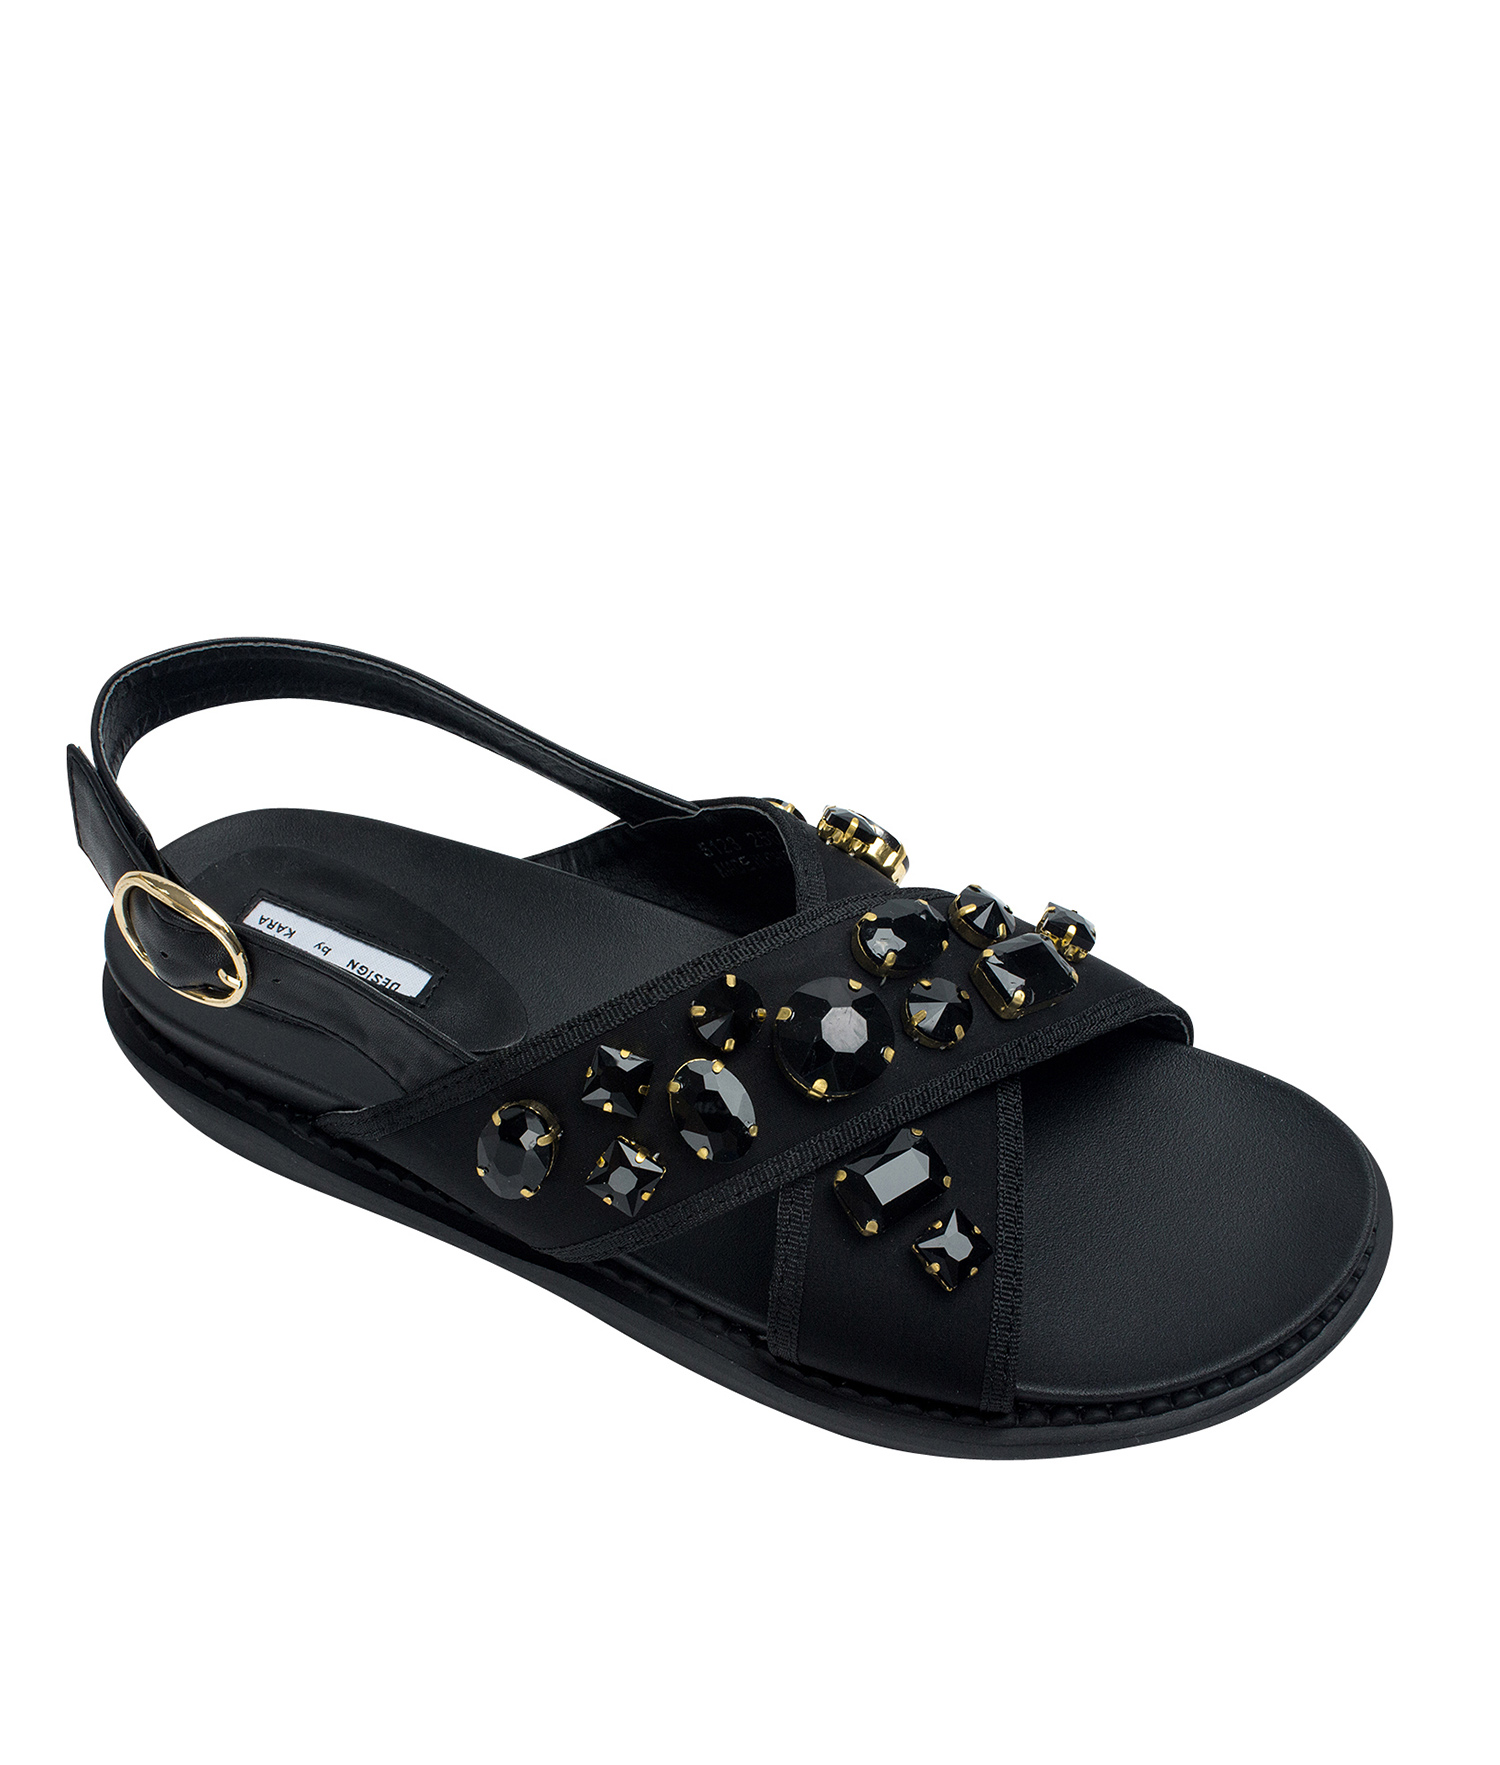 c53ba5583704bf AnnaKastle Womens Jewelled Neoprene Criss Cross Flat Sandals Black